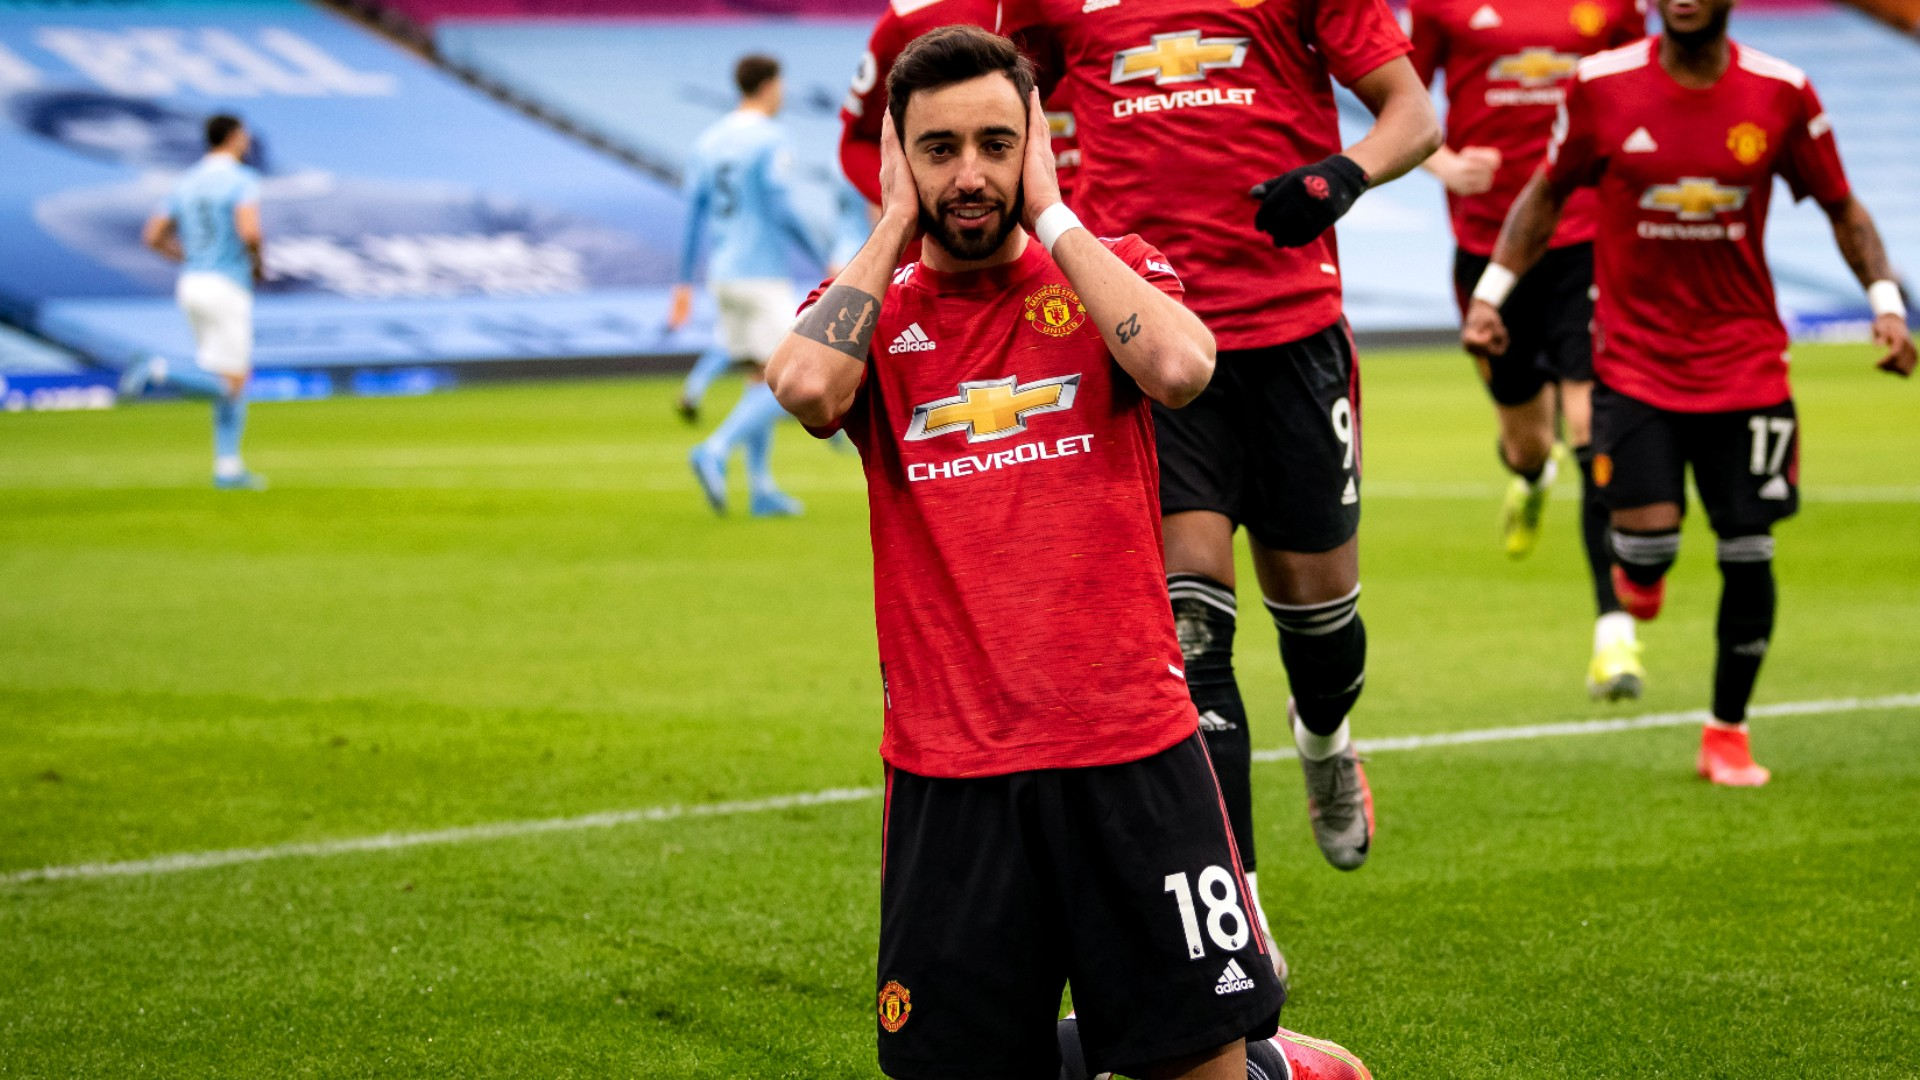 Bruno Fernandes dismisses critics after derby win: People will always complain about everything